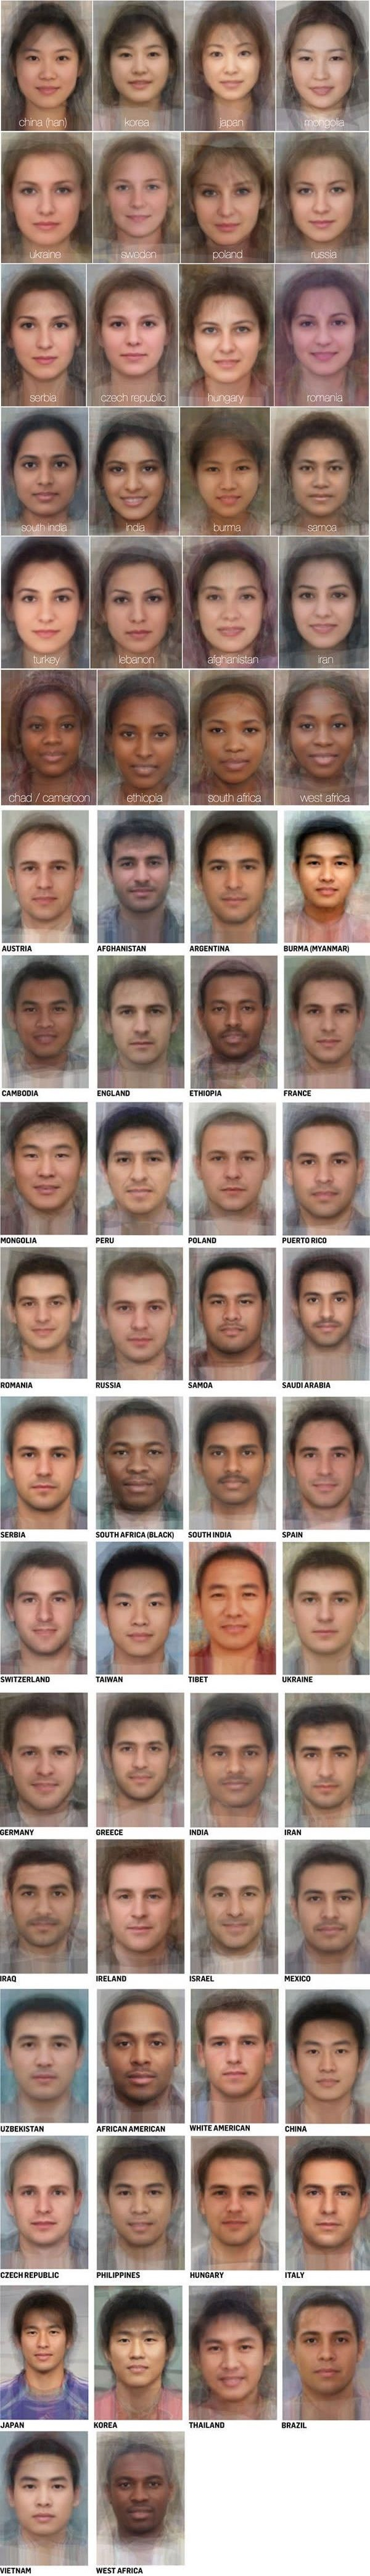 VineScope - The Average Men And Women's Faces In Different Countries